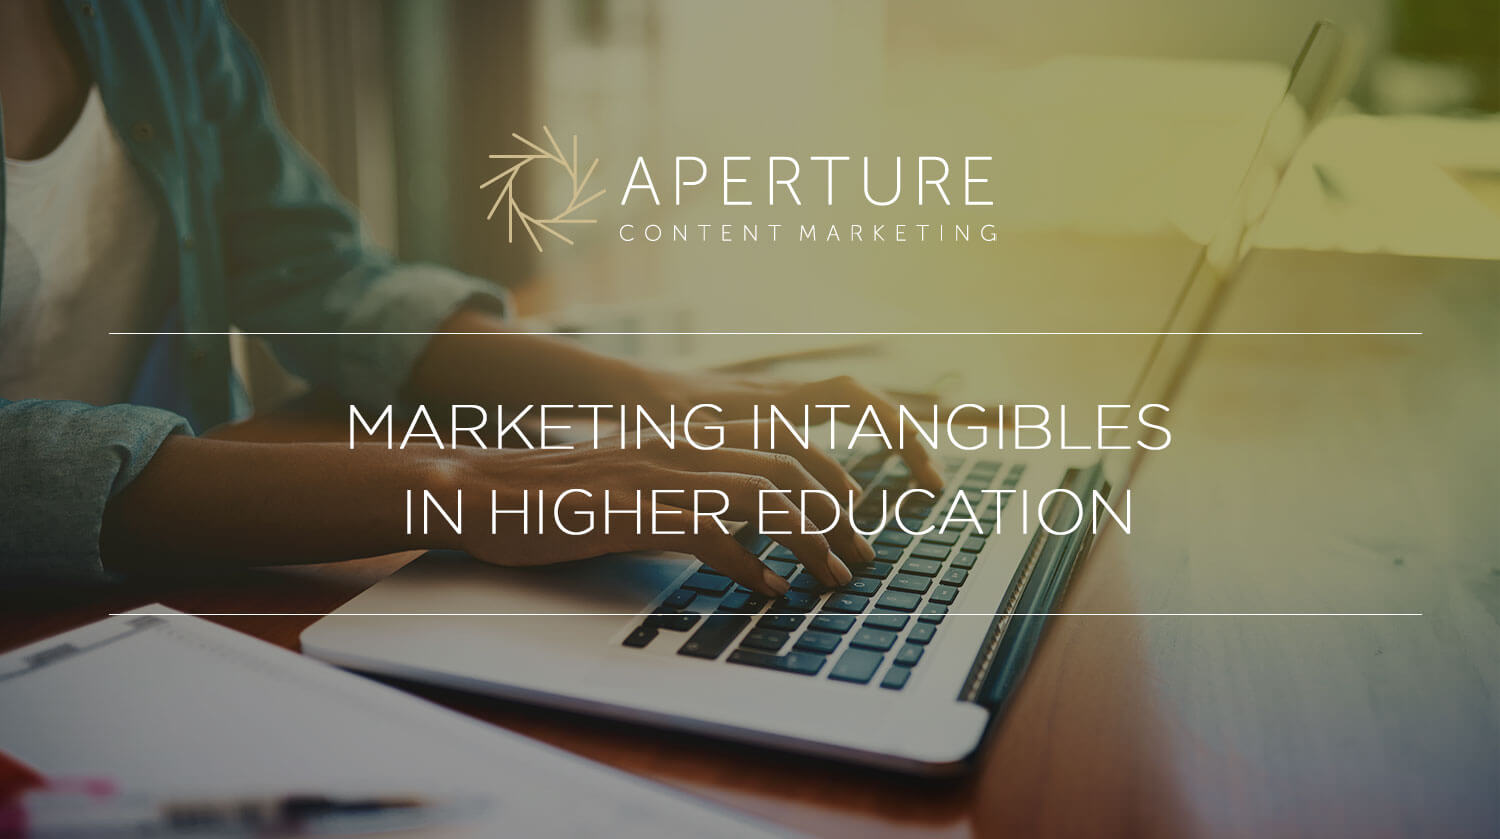 Marketing the Intangible in Higher Education